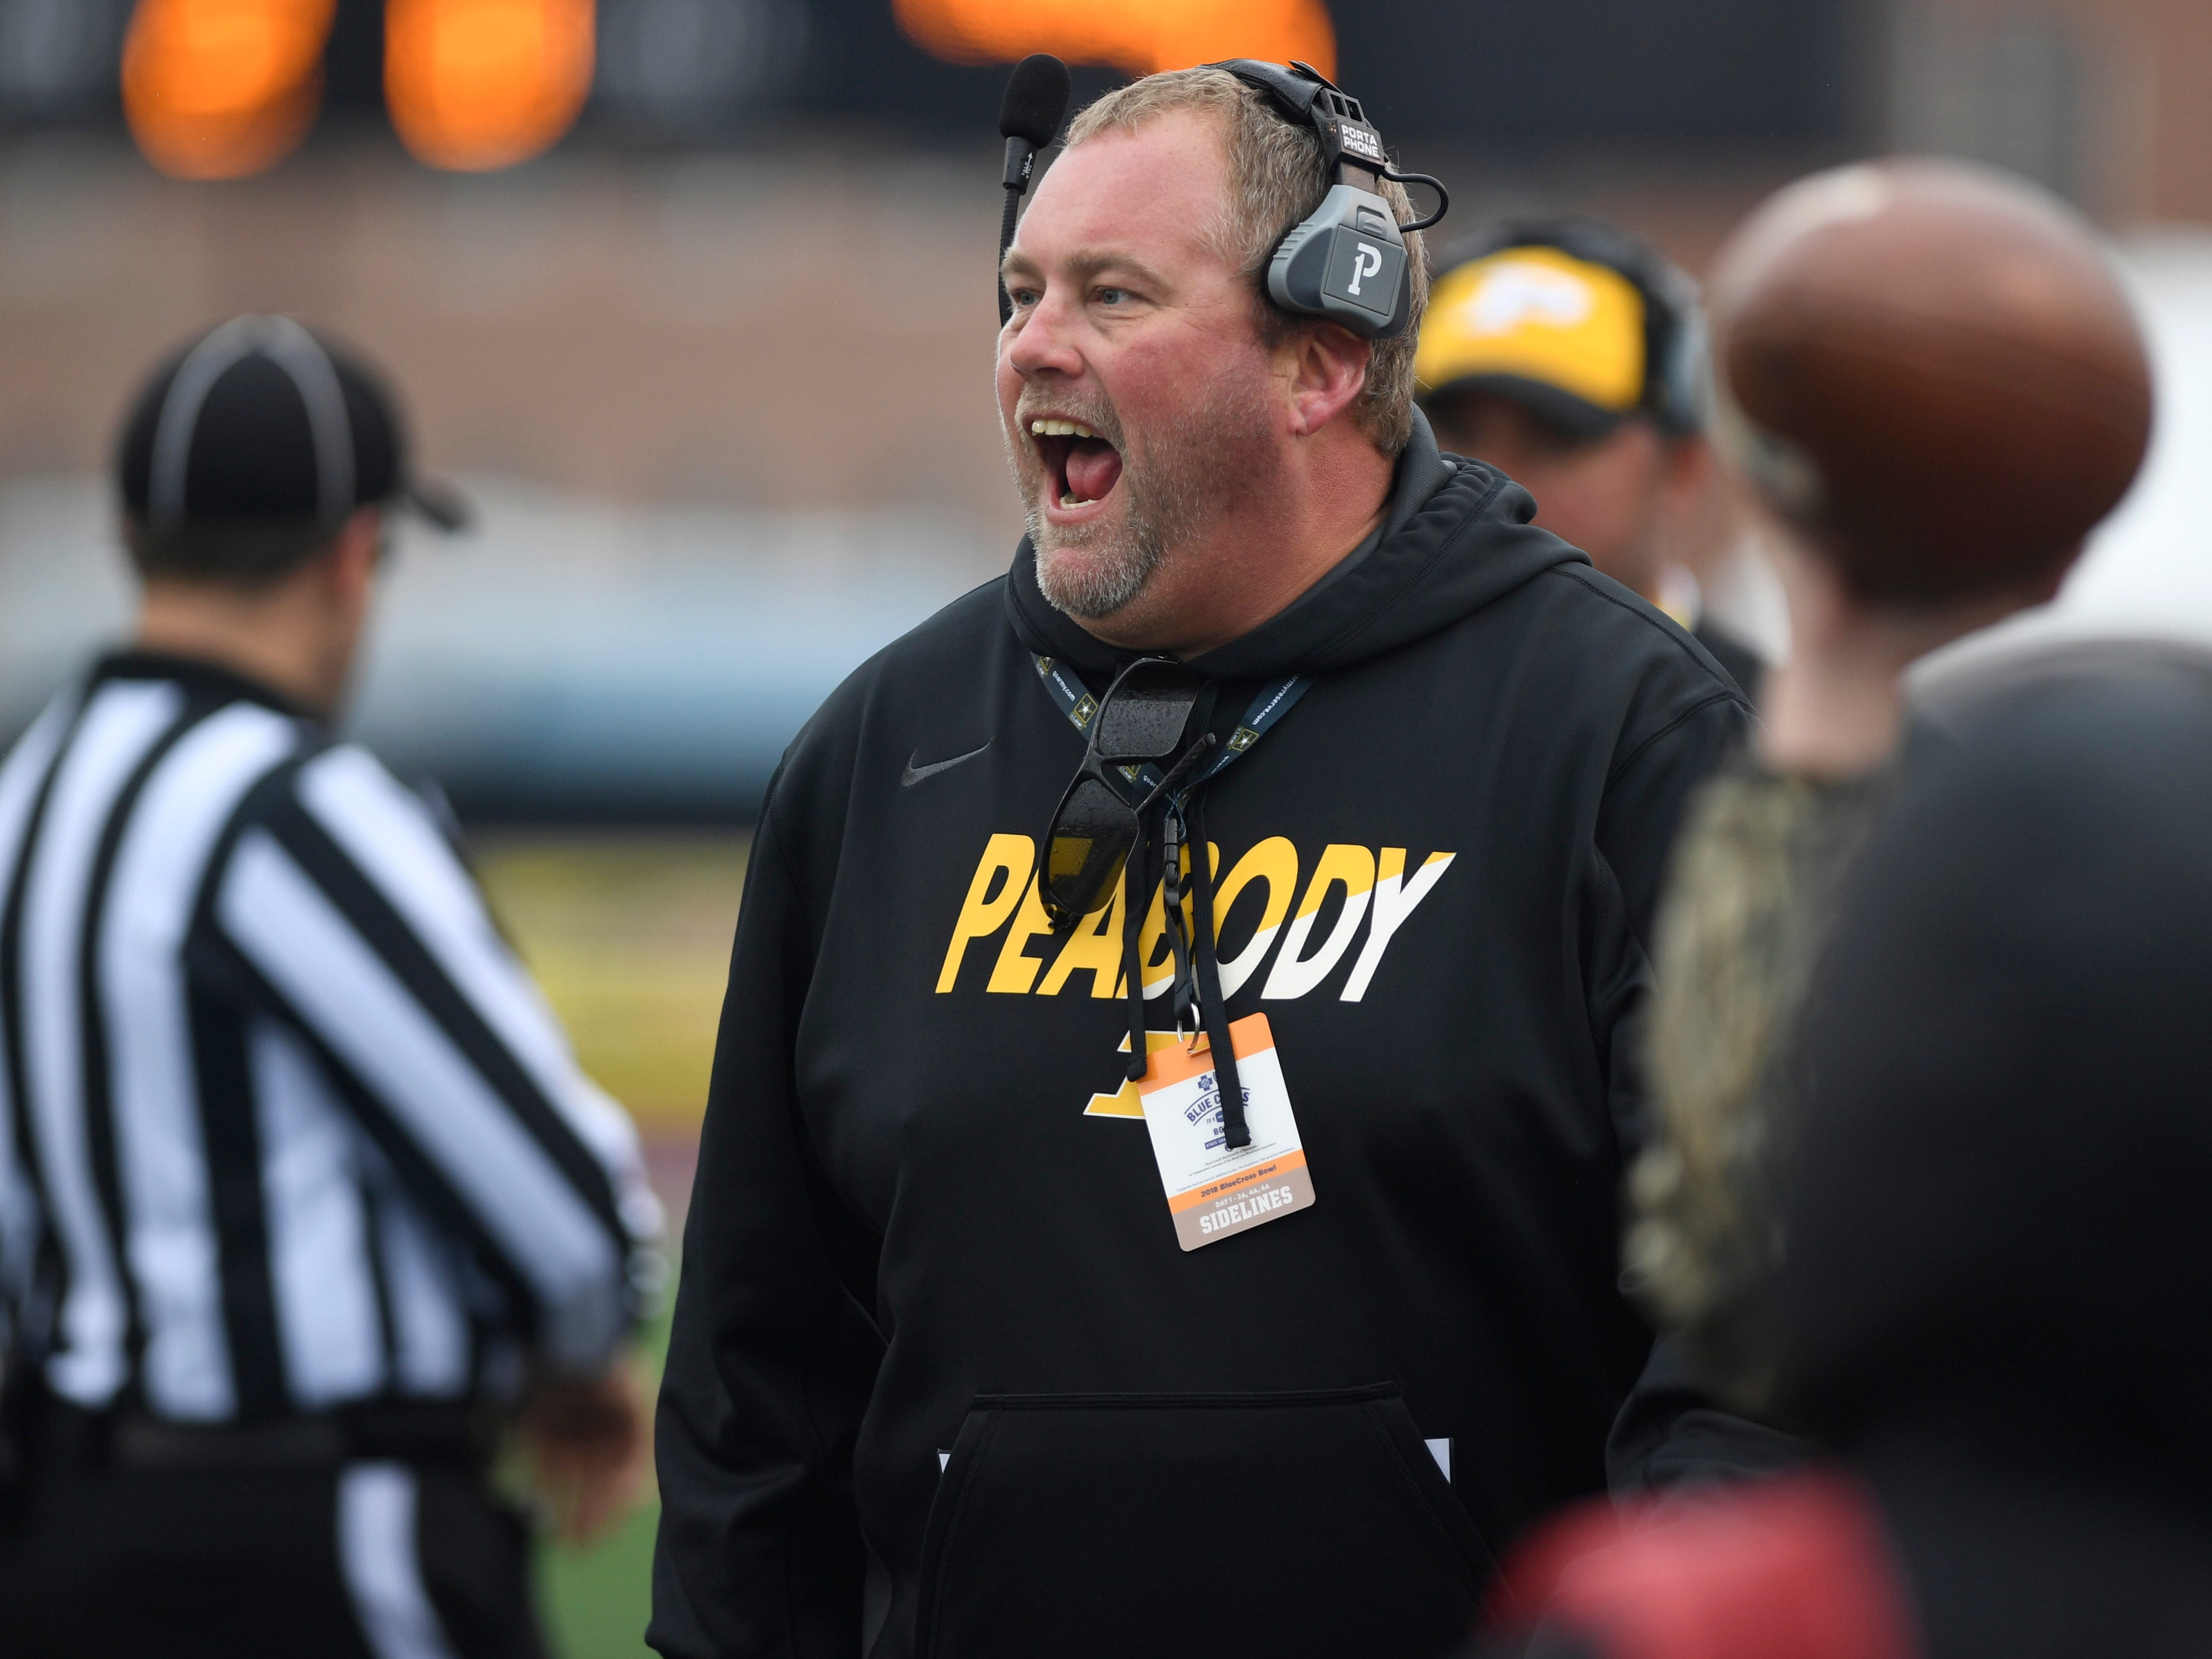 Peabody assistant coach Steve Mathis celebrates a play in the second quarter during the Class 2A BlueCross Bowl state championship at Tennessee Tech's Tucker Stadium in Cookeville, Tenn., on Thursday, Nov. 29, 2018.